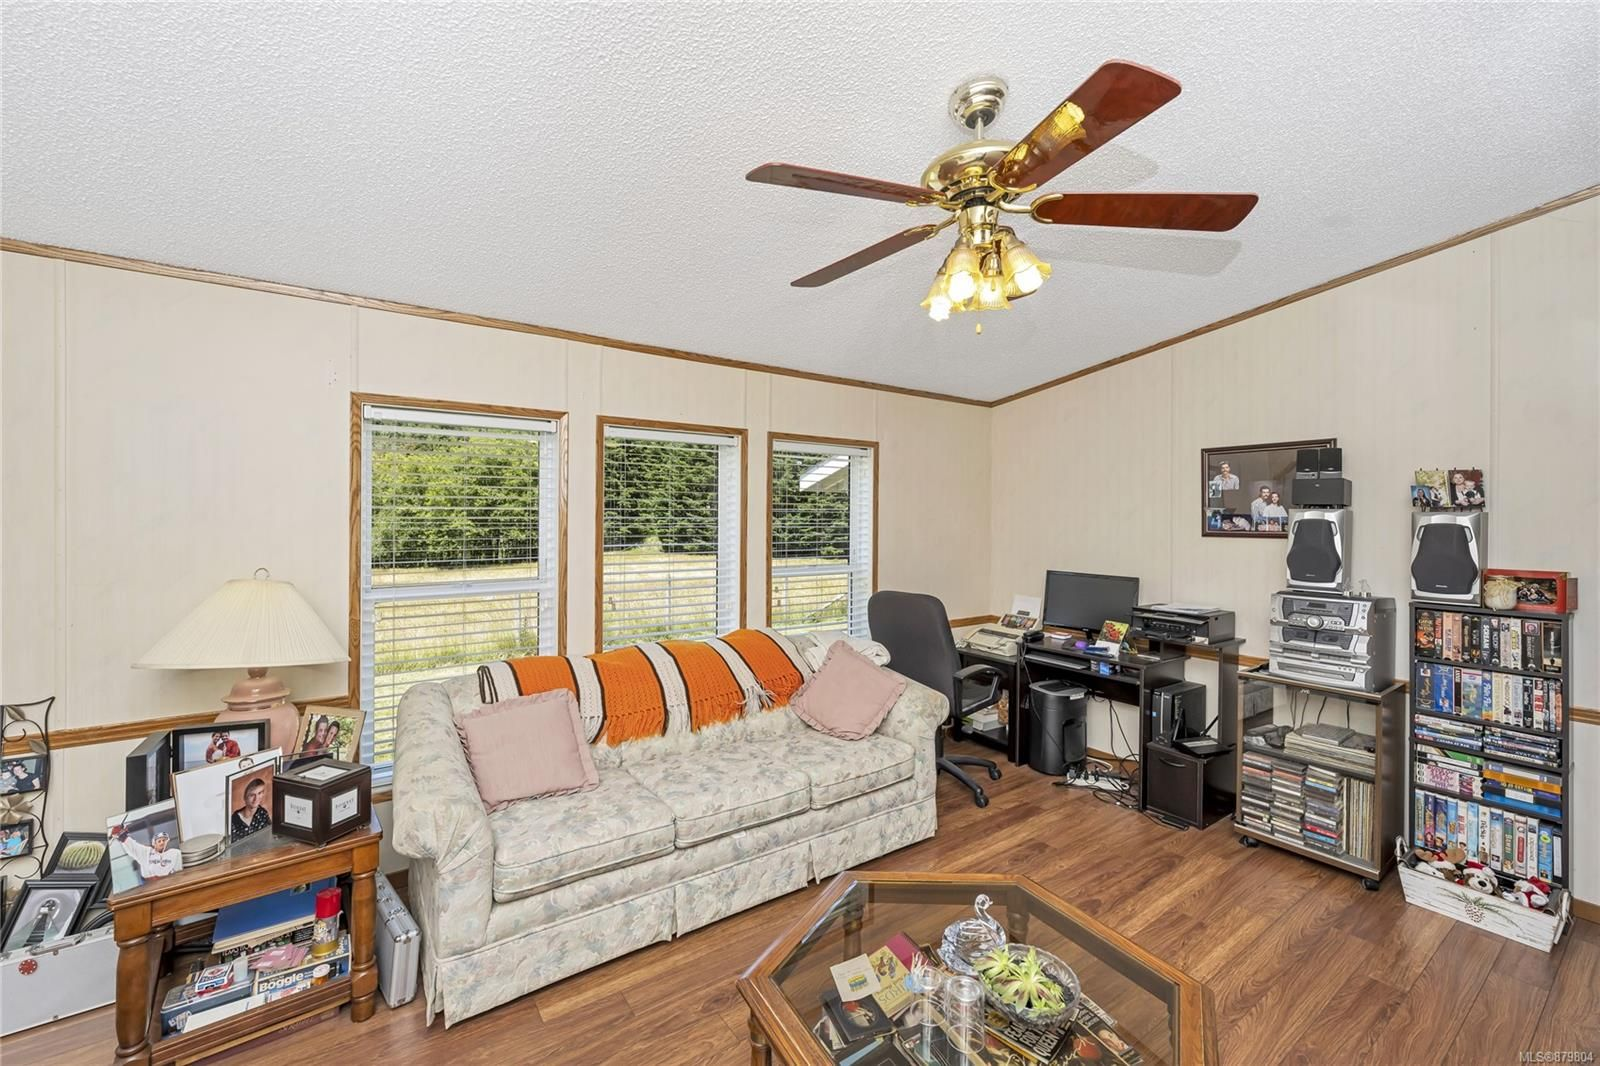 Photo 27: Photos: 3596 Riverside Rd in : ML Cobble Hill Manufactured Home for sale (Malahat & Area)  : MLS®# 879804